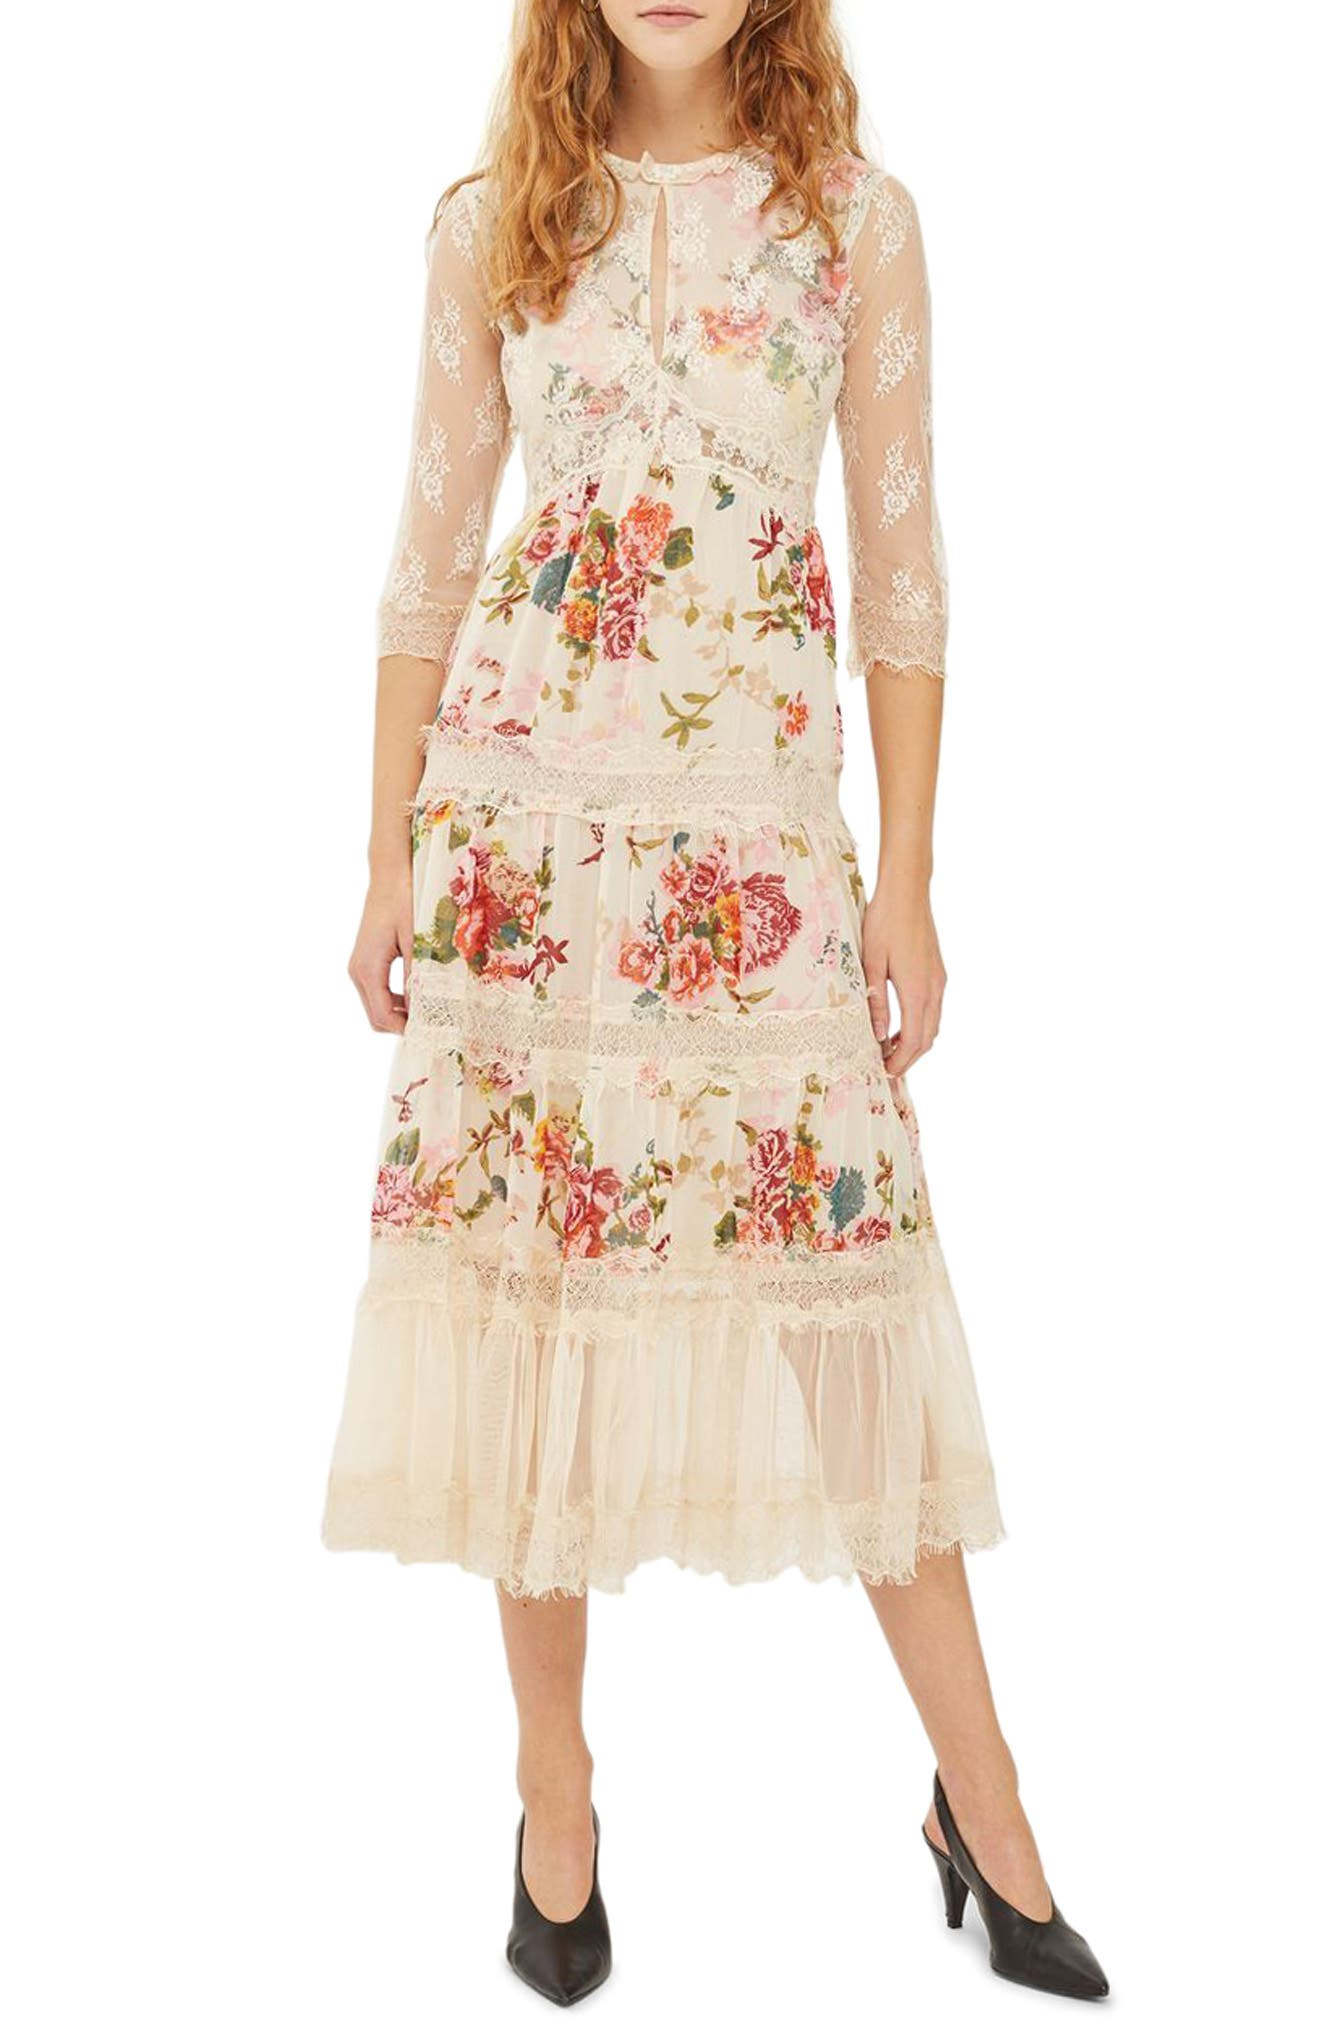 Topshop Lace Tier Floral Midi Dress